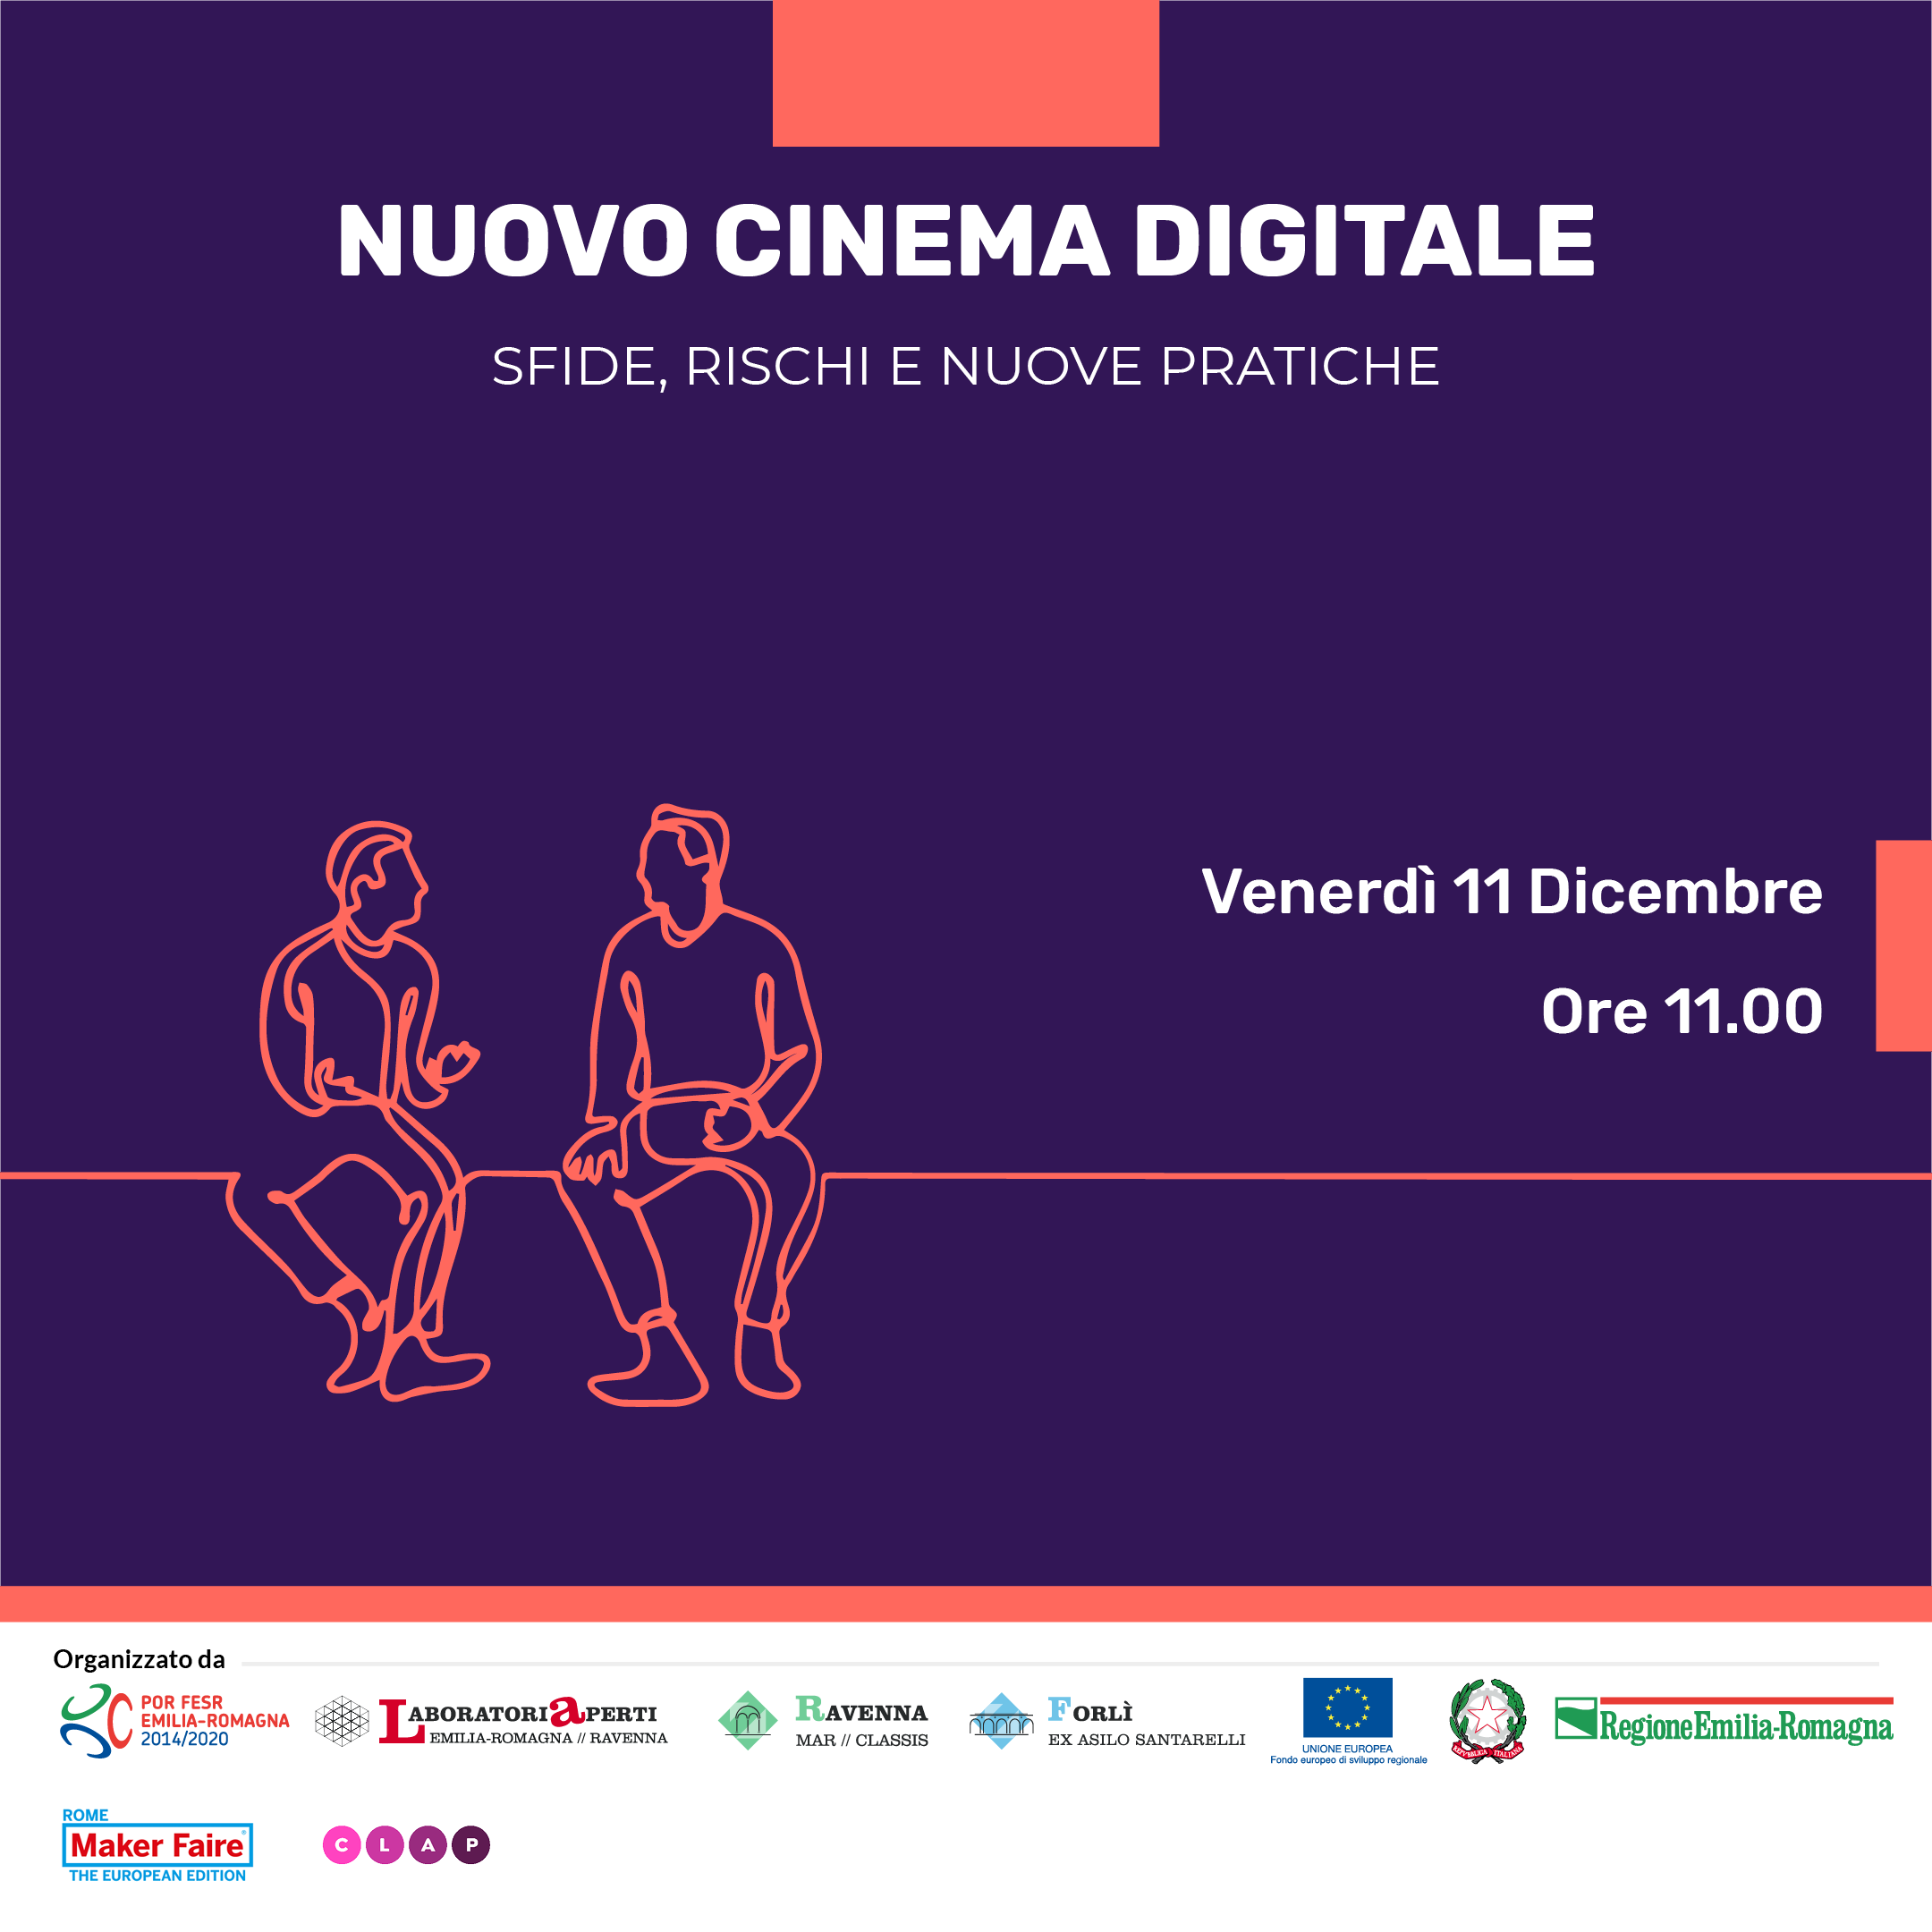 New digital cinema: challenges, risks and new practices